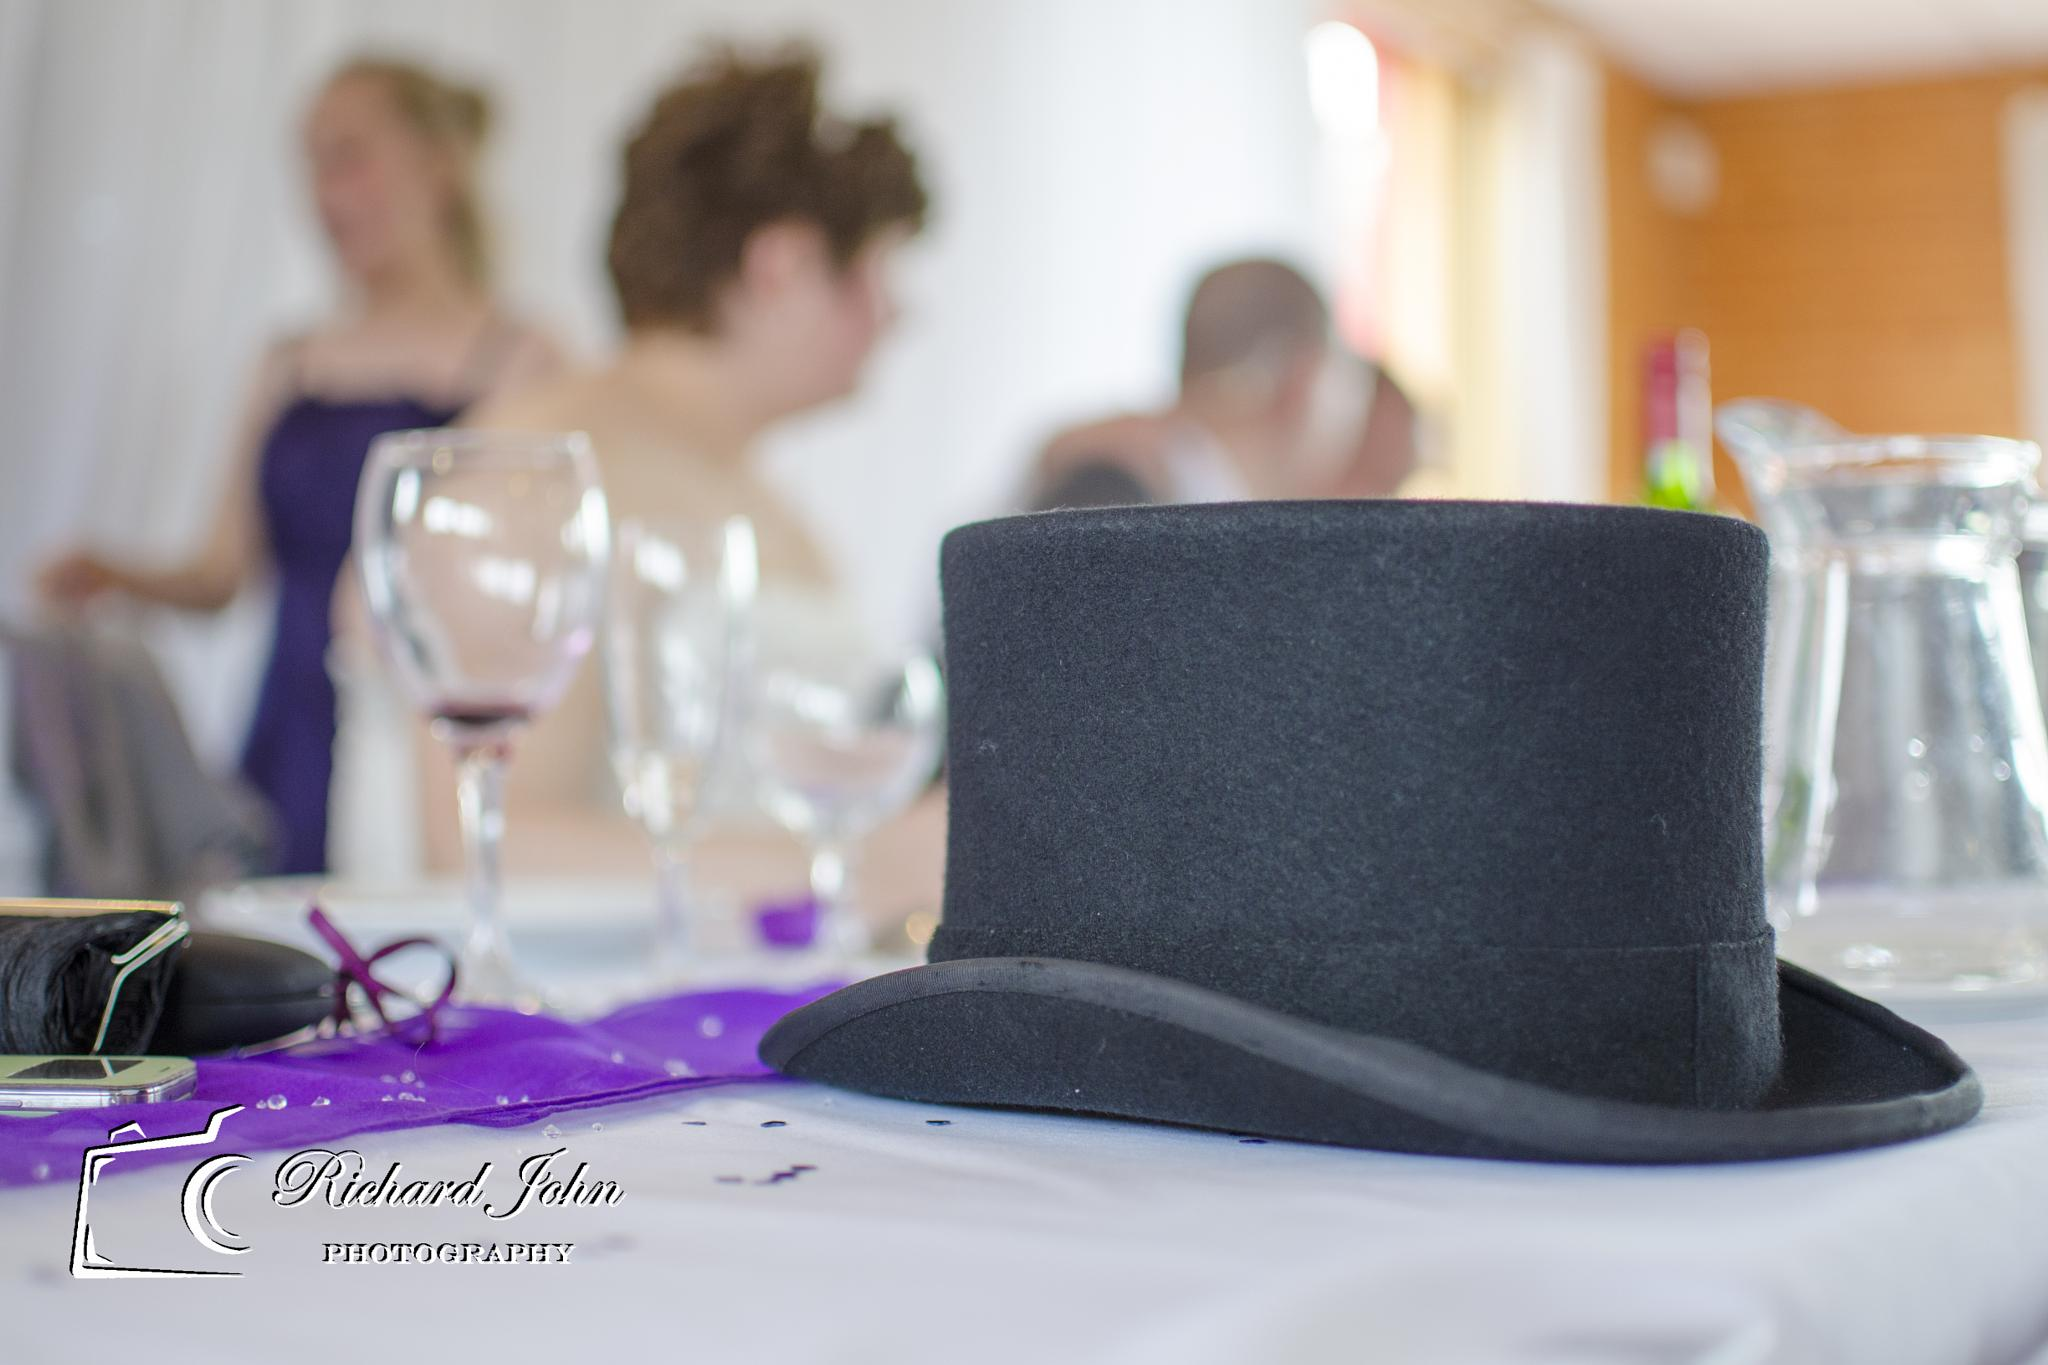 Top Hat DOF by RichardJohnPhotography